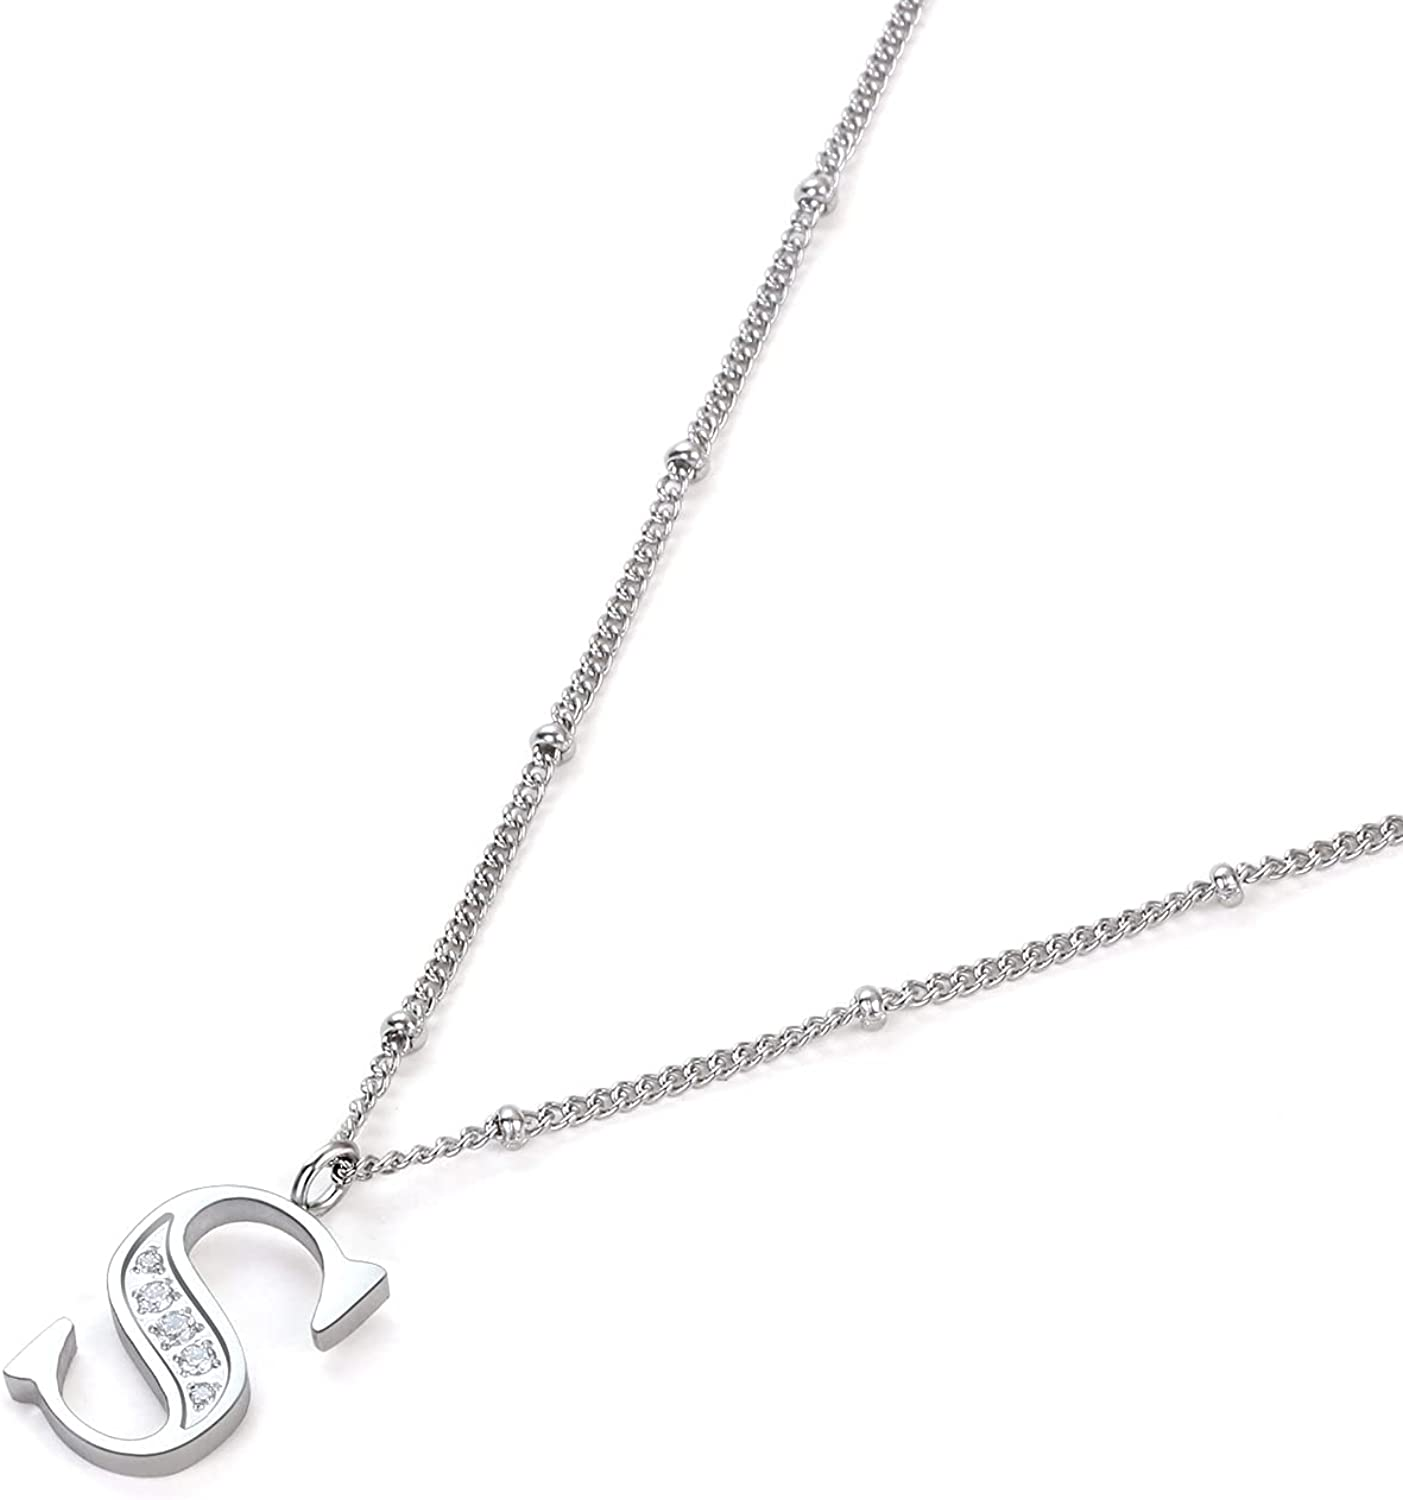 Initial Necklaces for Women, STINO Personalized Letter Necklace with AAAAA Cubic Zirconia, Hypoallergenic Dainty Choker Necklaces with Chain Extenders Jewelry Birthday Gift for Men, Mom, Best Friends